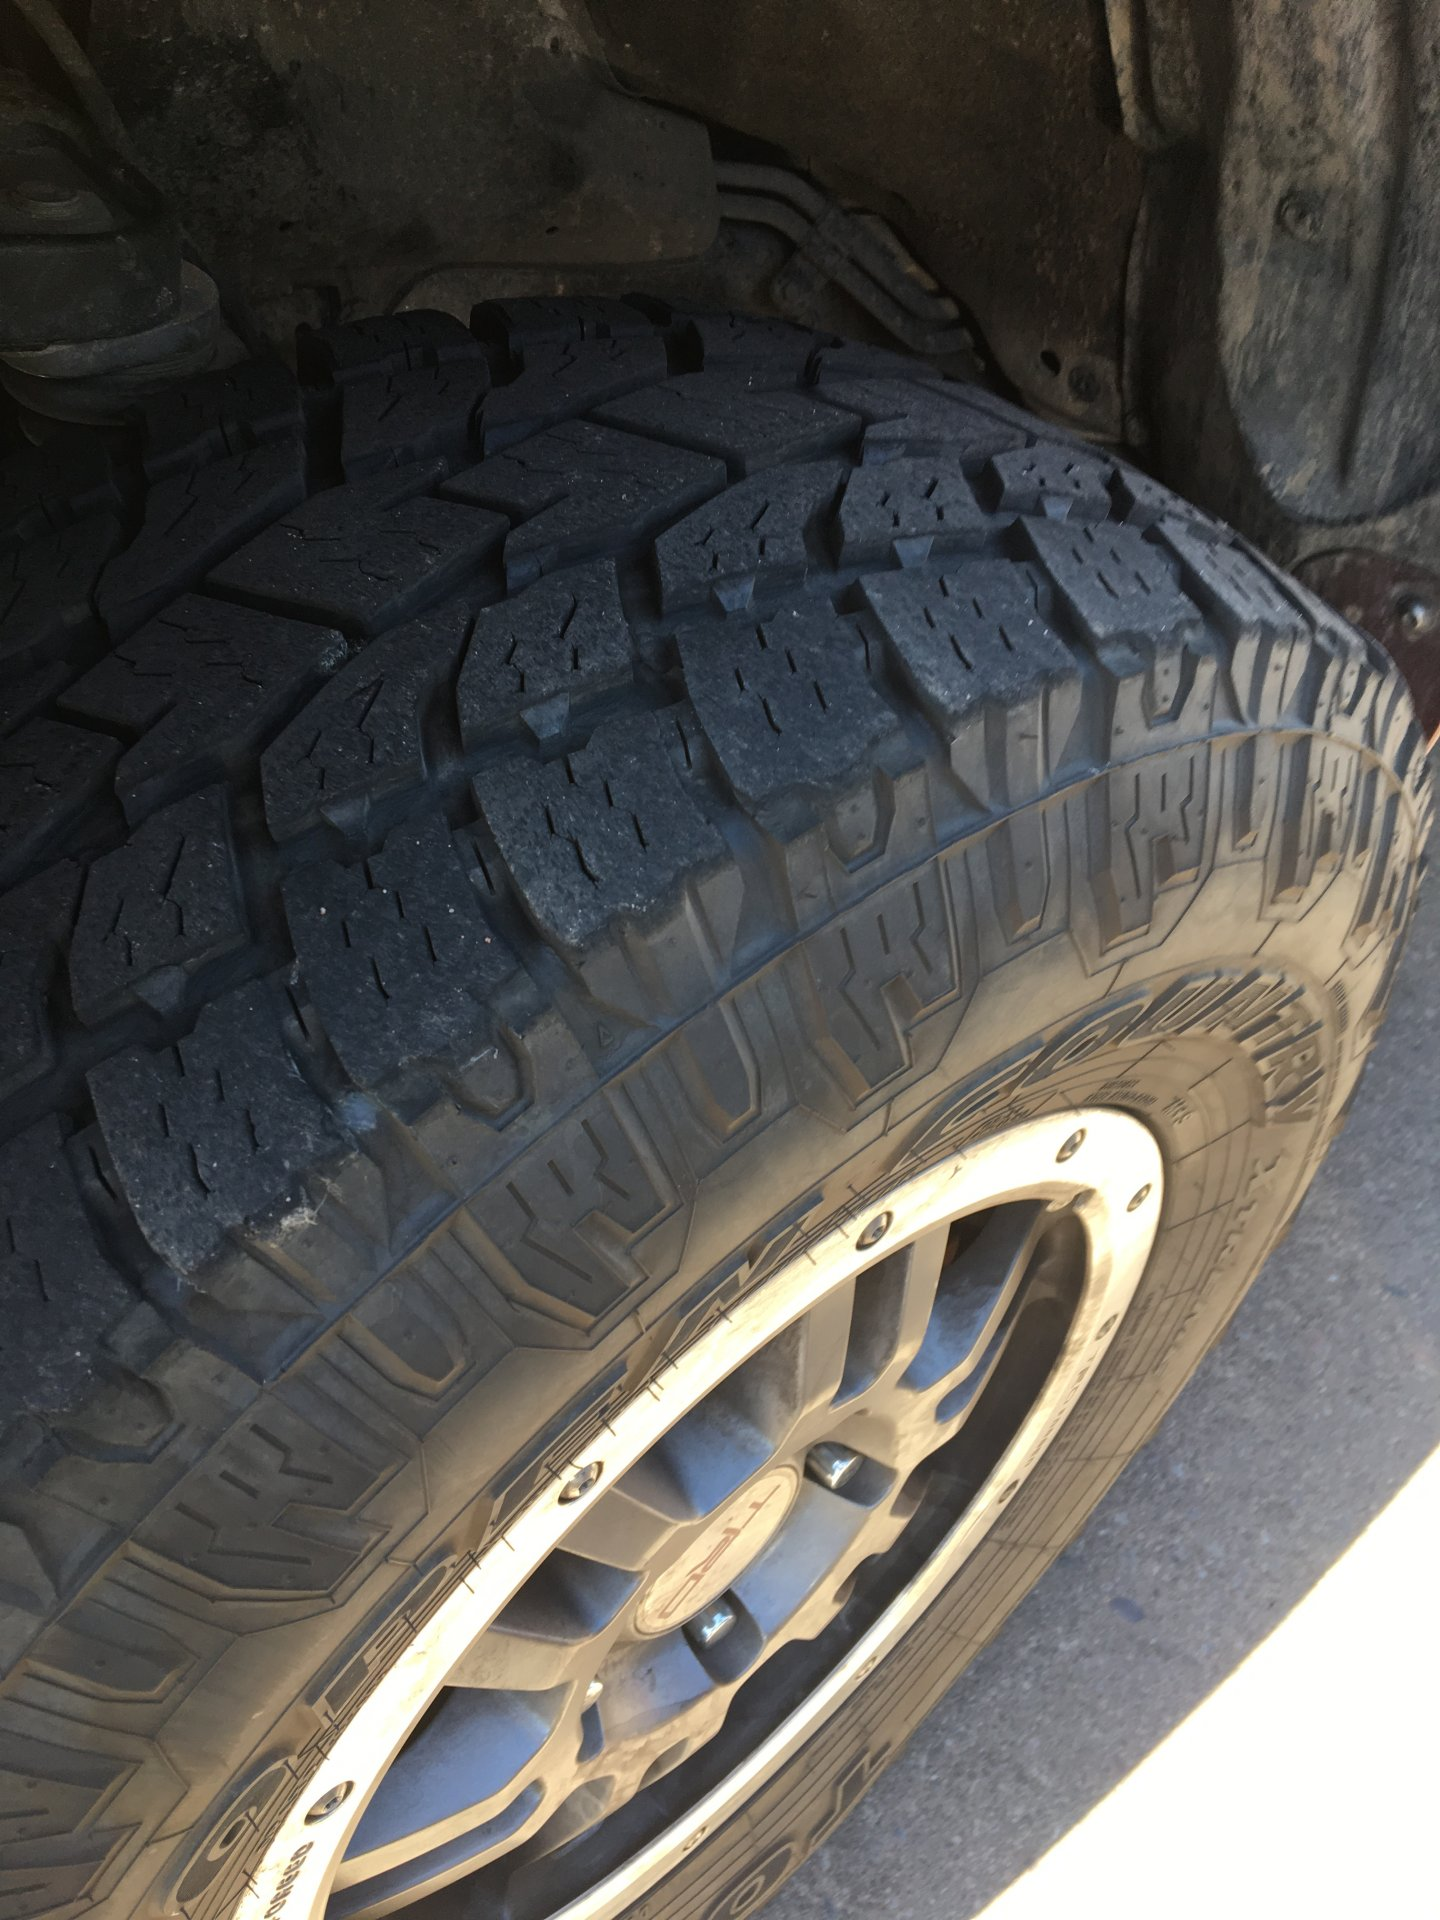 For Sale Set of 5 285 75 17 TOYO ATIIs $500 located in Phoenix